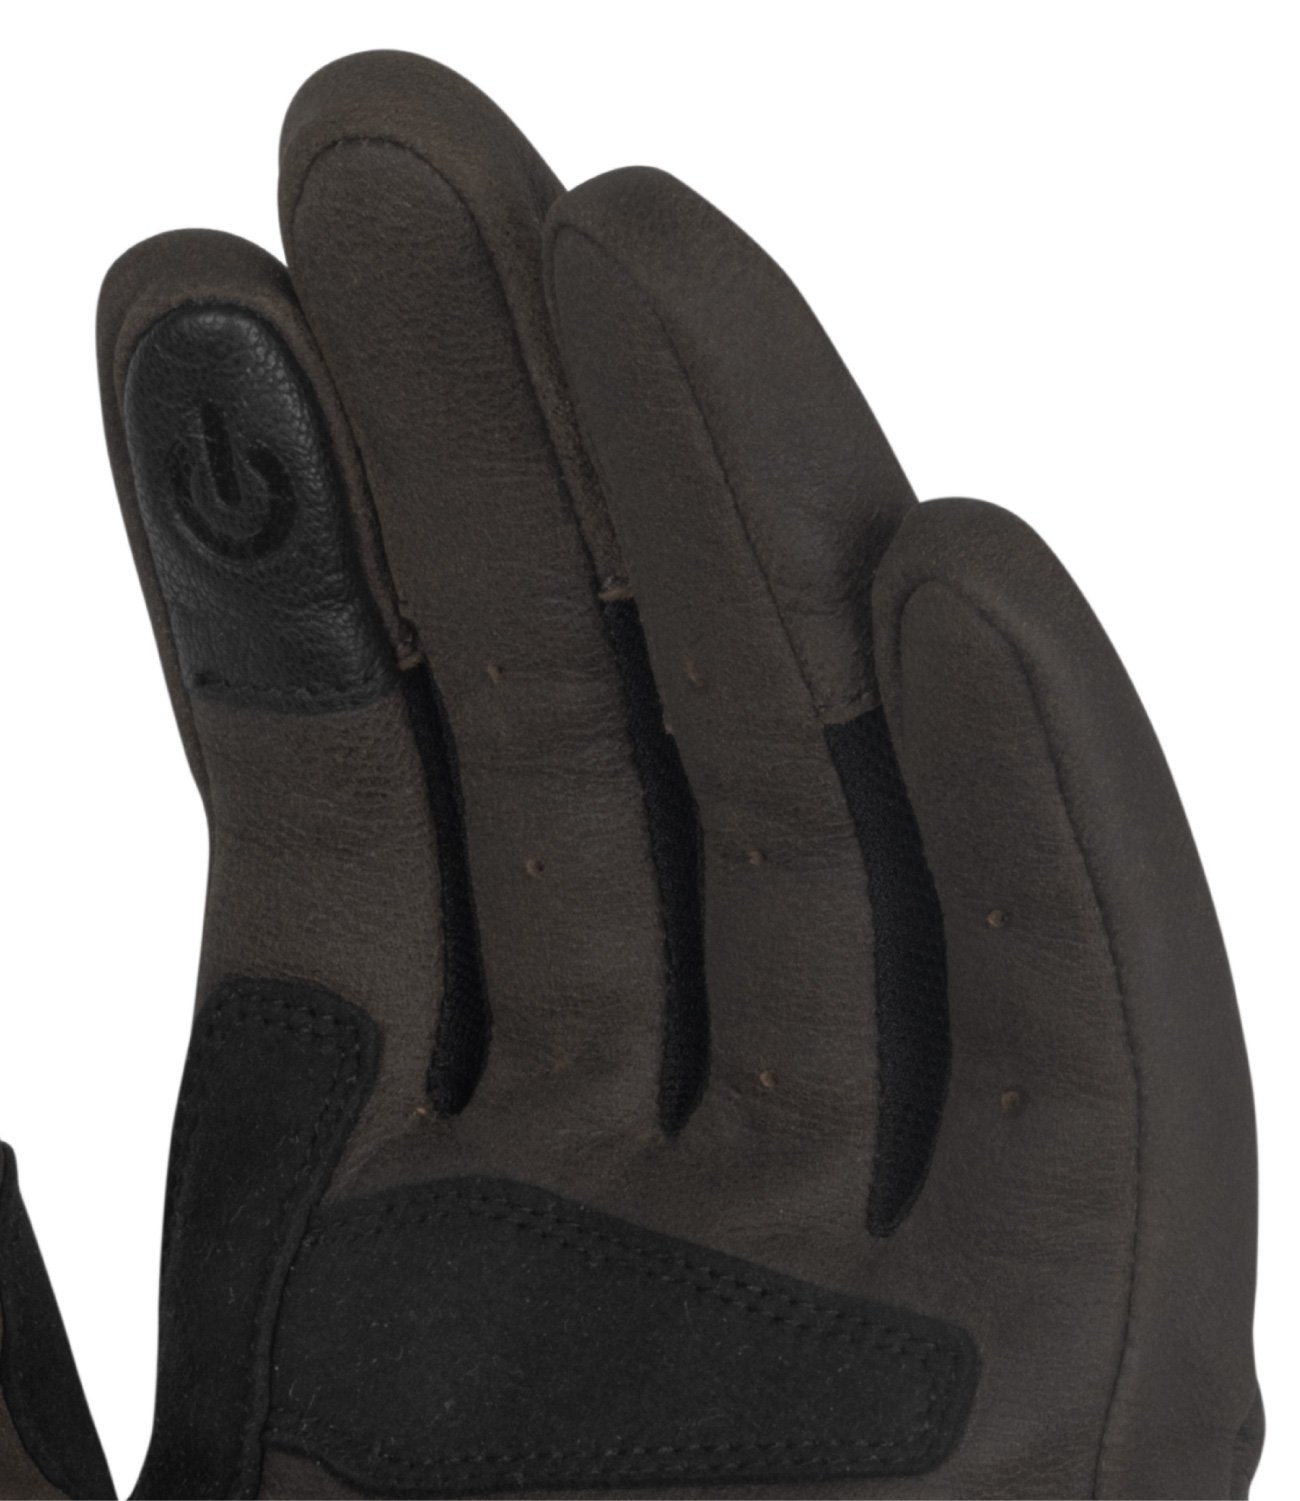 Rynox Urban Gloves Brown 8